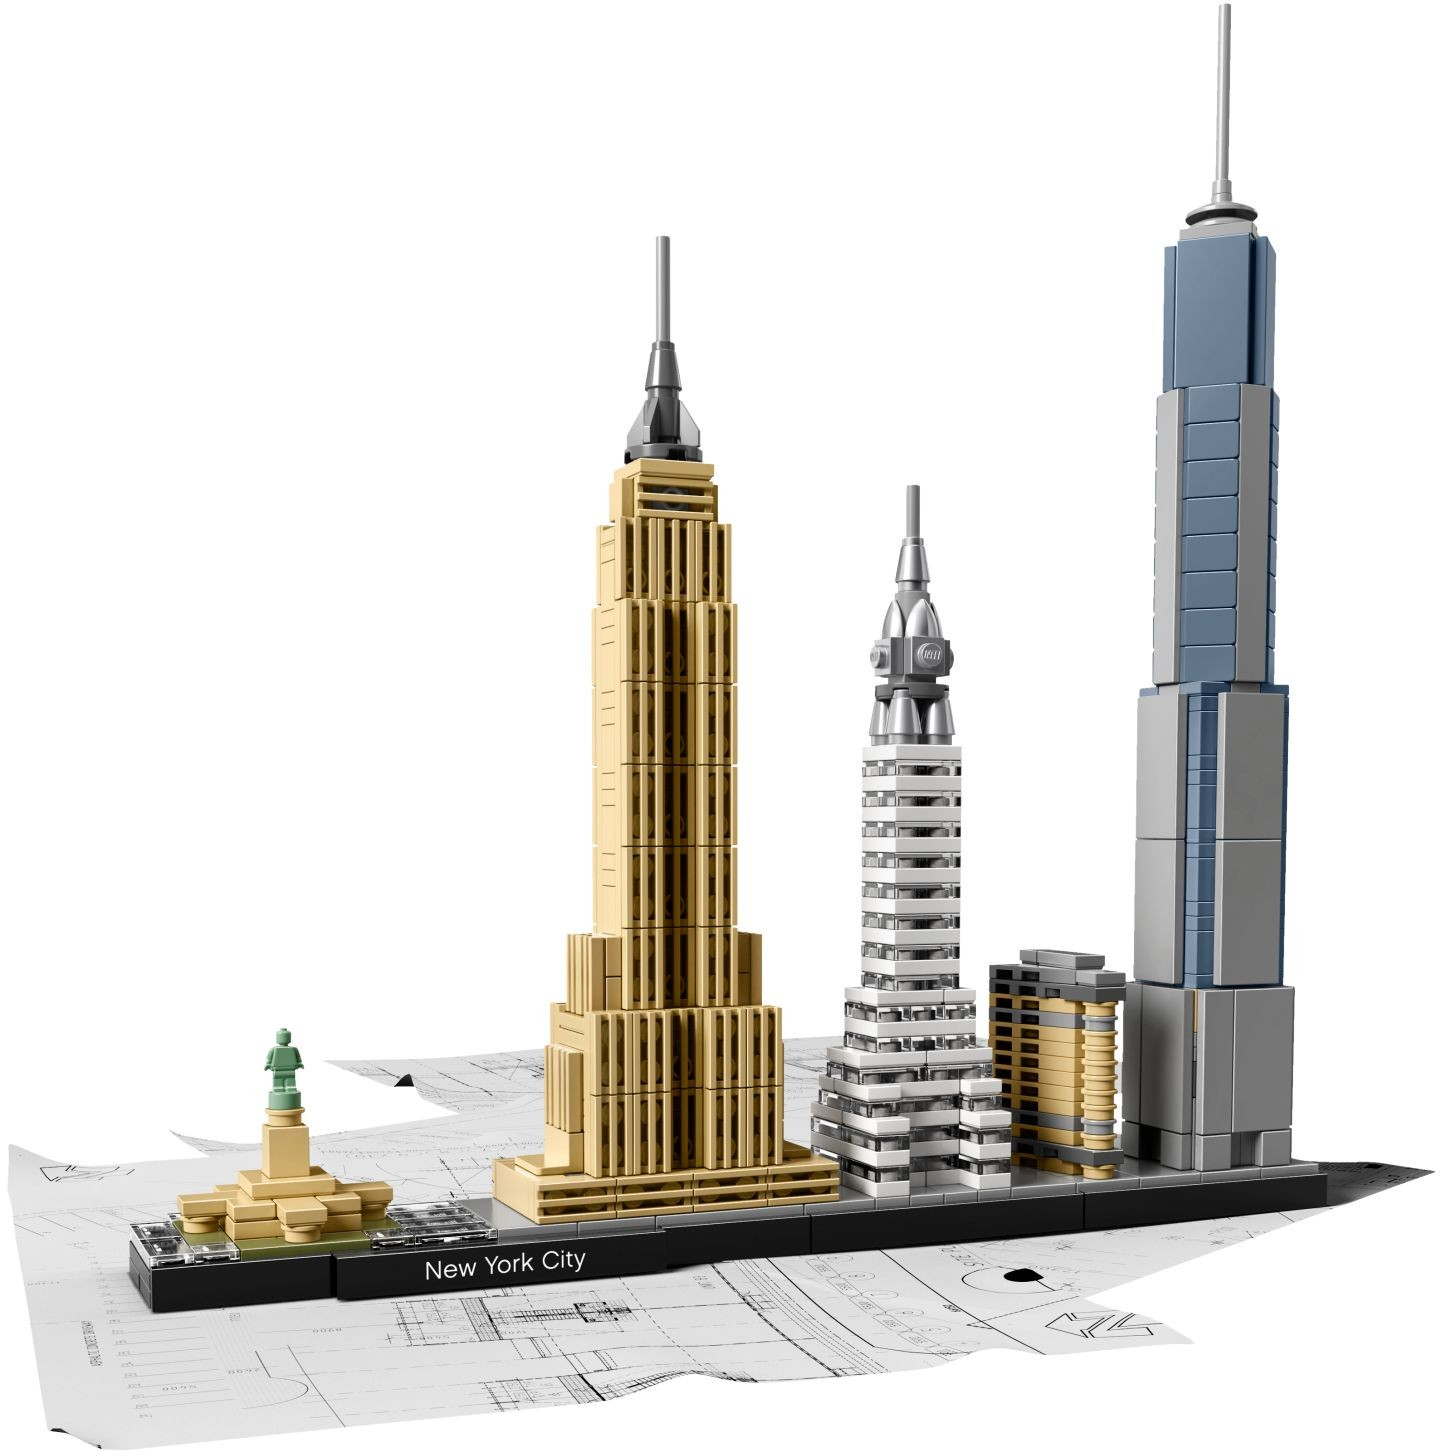 Lego Architecture 2016 Sets! New York City! Venice! Berlin